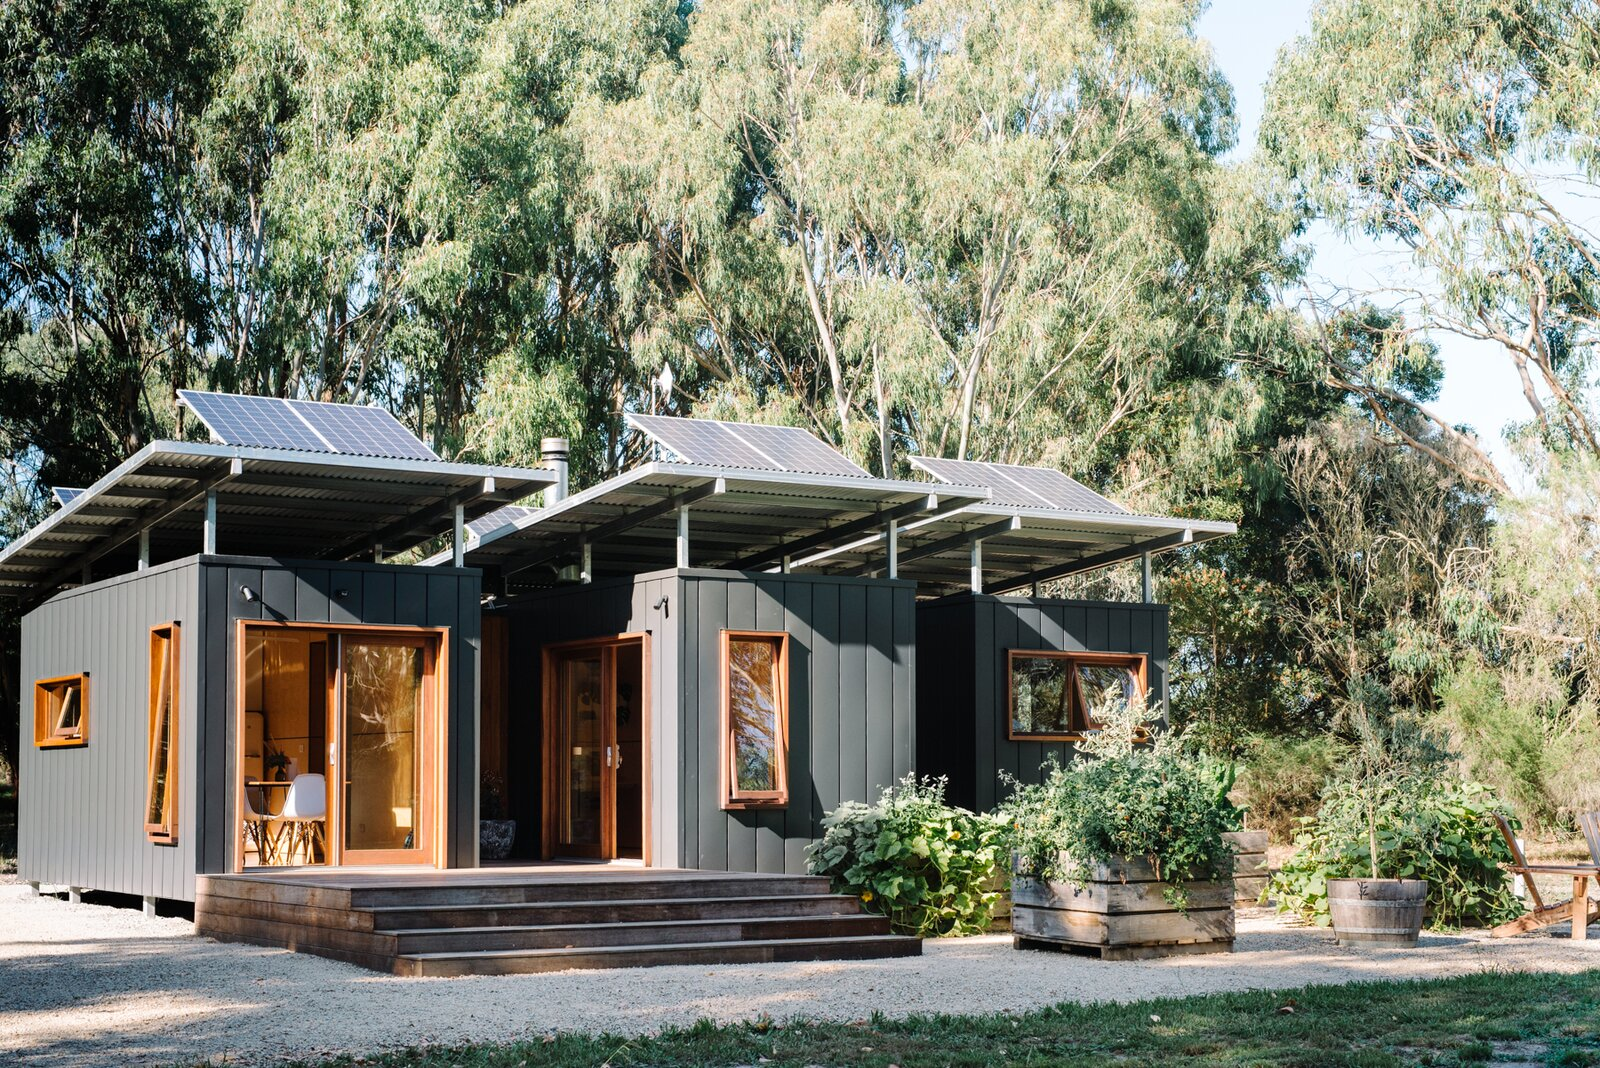 Wattle Bank shipping container tiny home